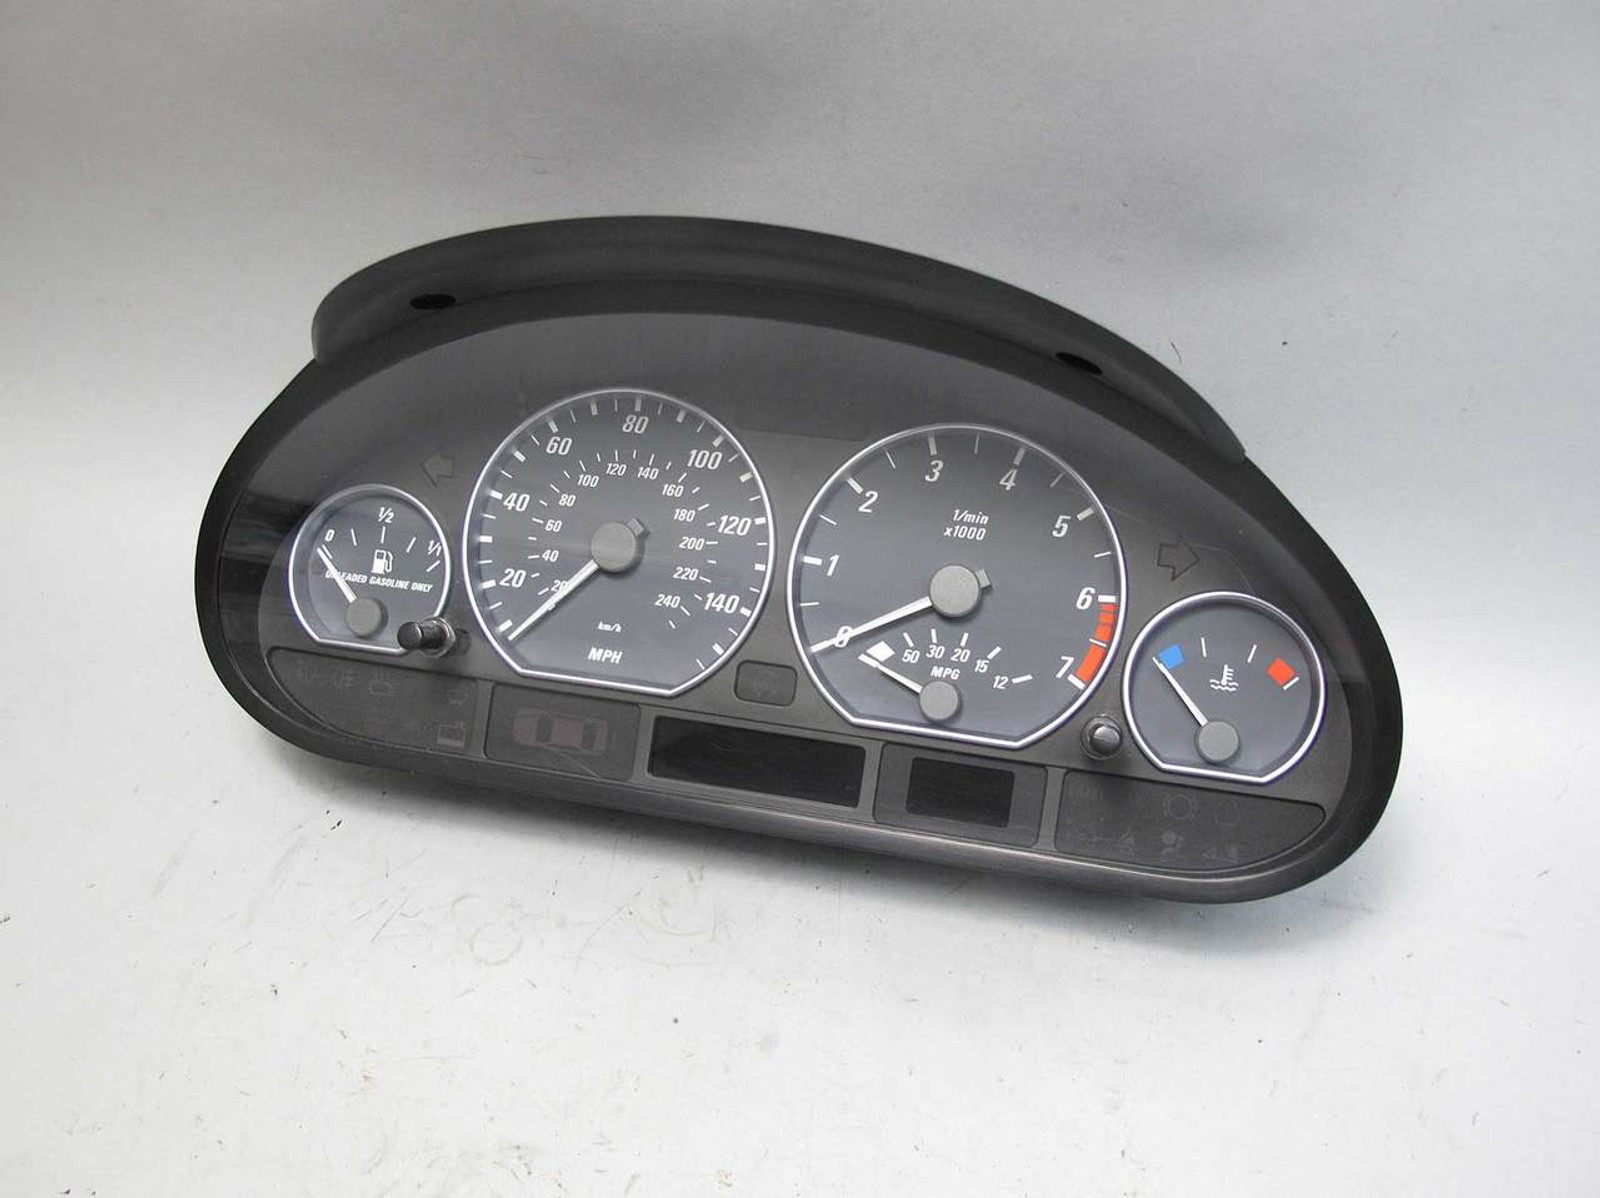 2001 Bmw E46 330ci Coupe Convertible Instrument Gauge Cluster 4 Auto Or Smg 22781 Prussian Motors